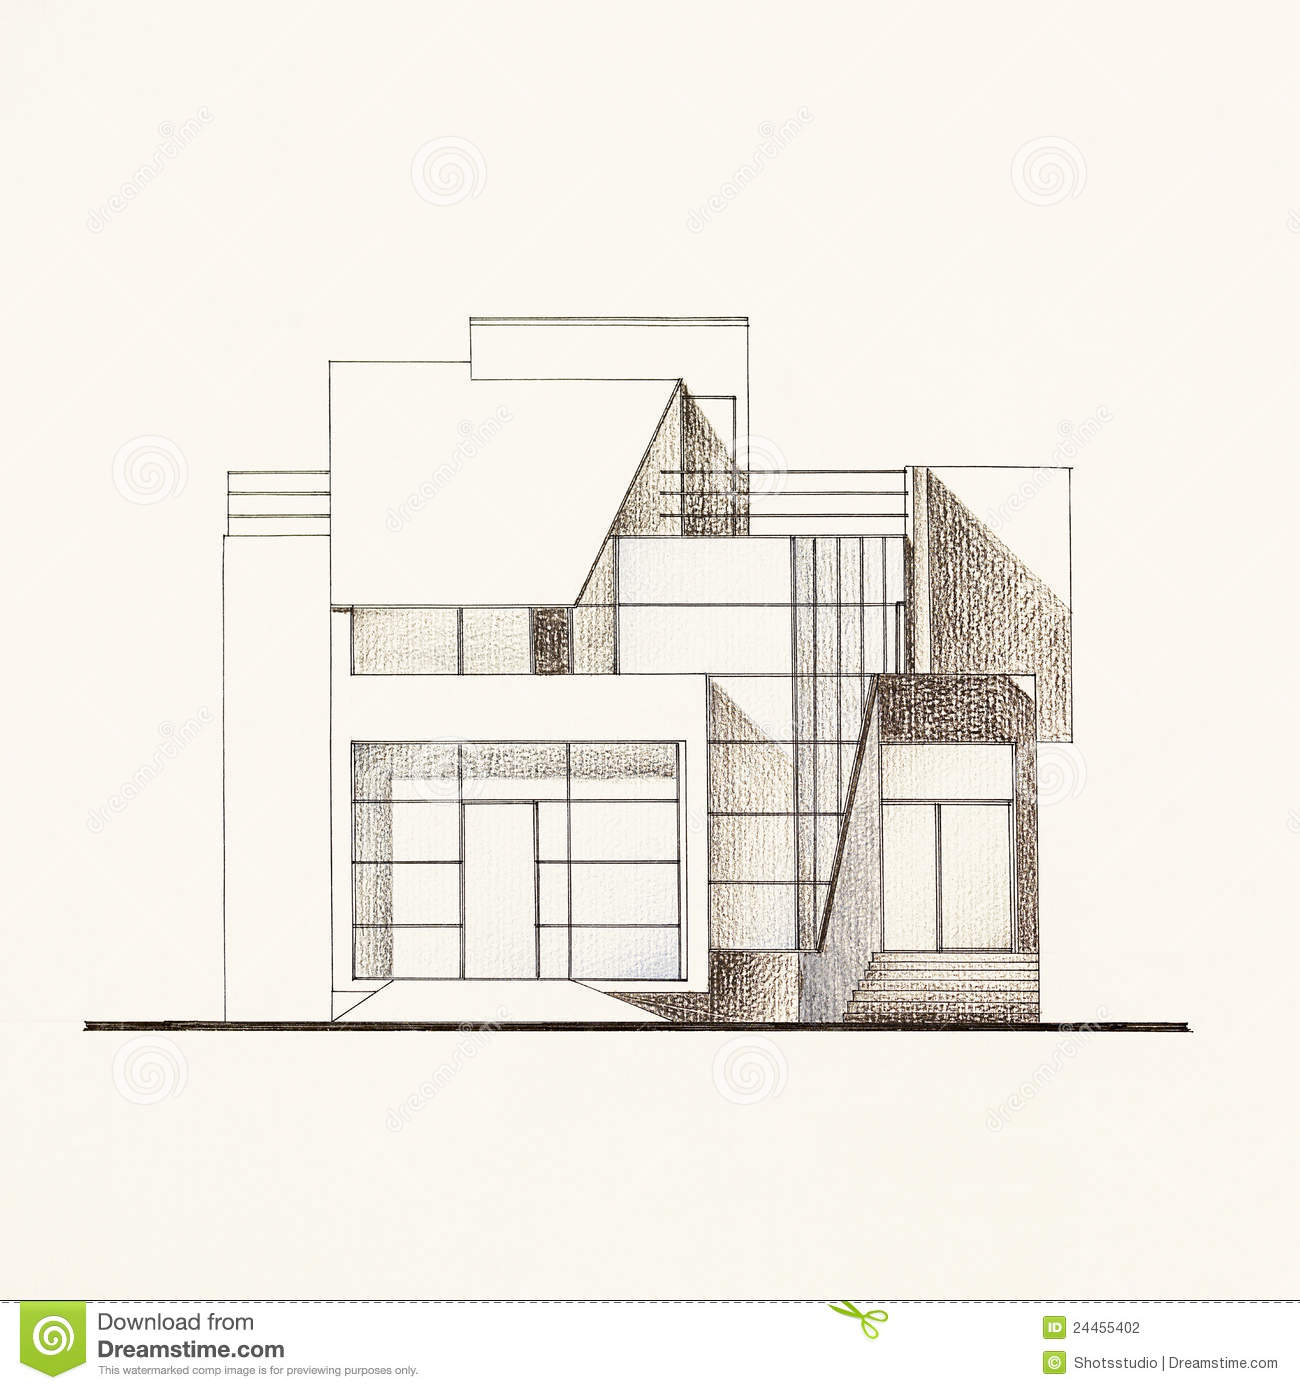 Architectural Facade Blueprint Of A Modern House Stock